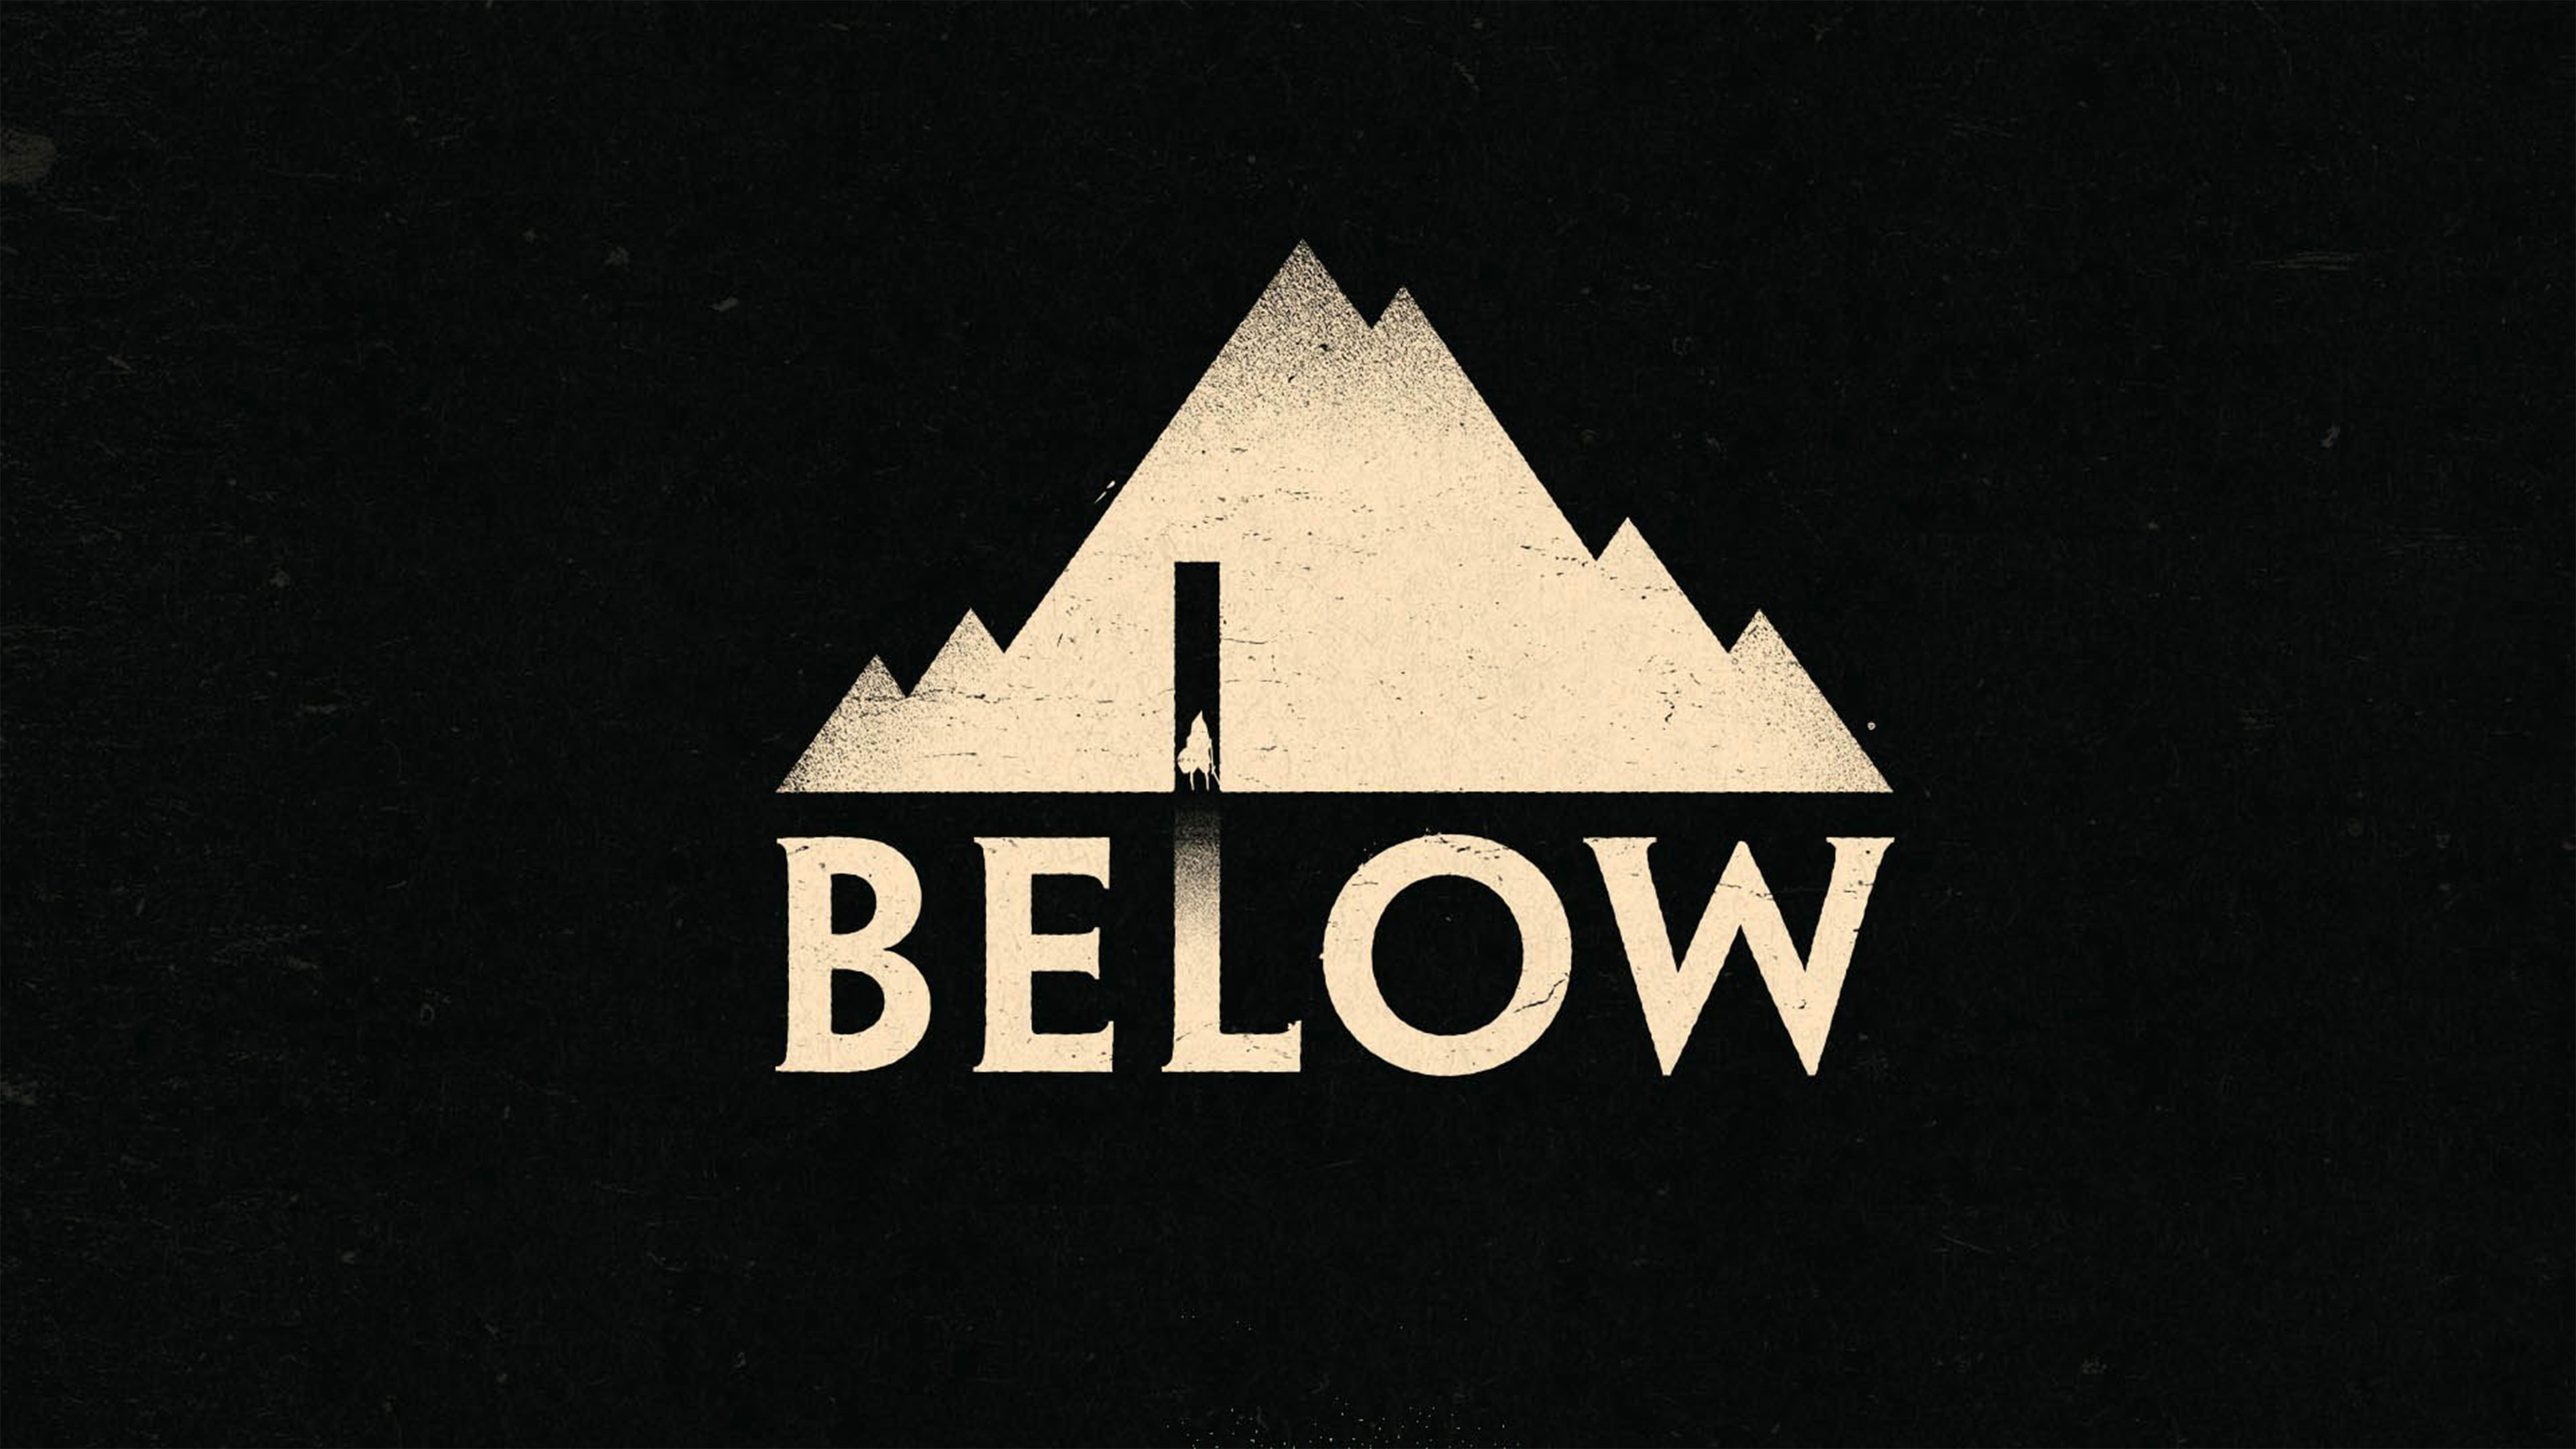 Below will finally surface next week screenshot